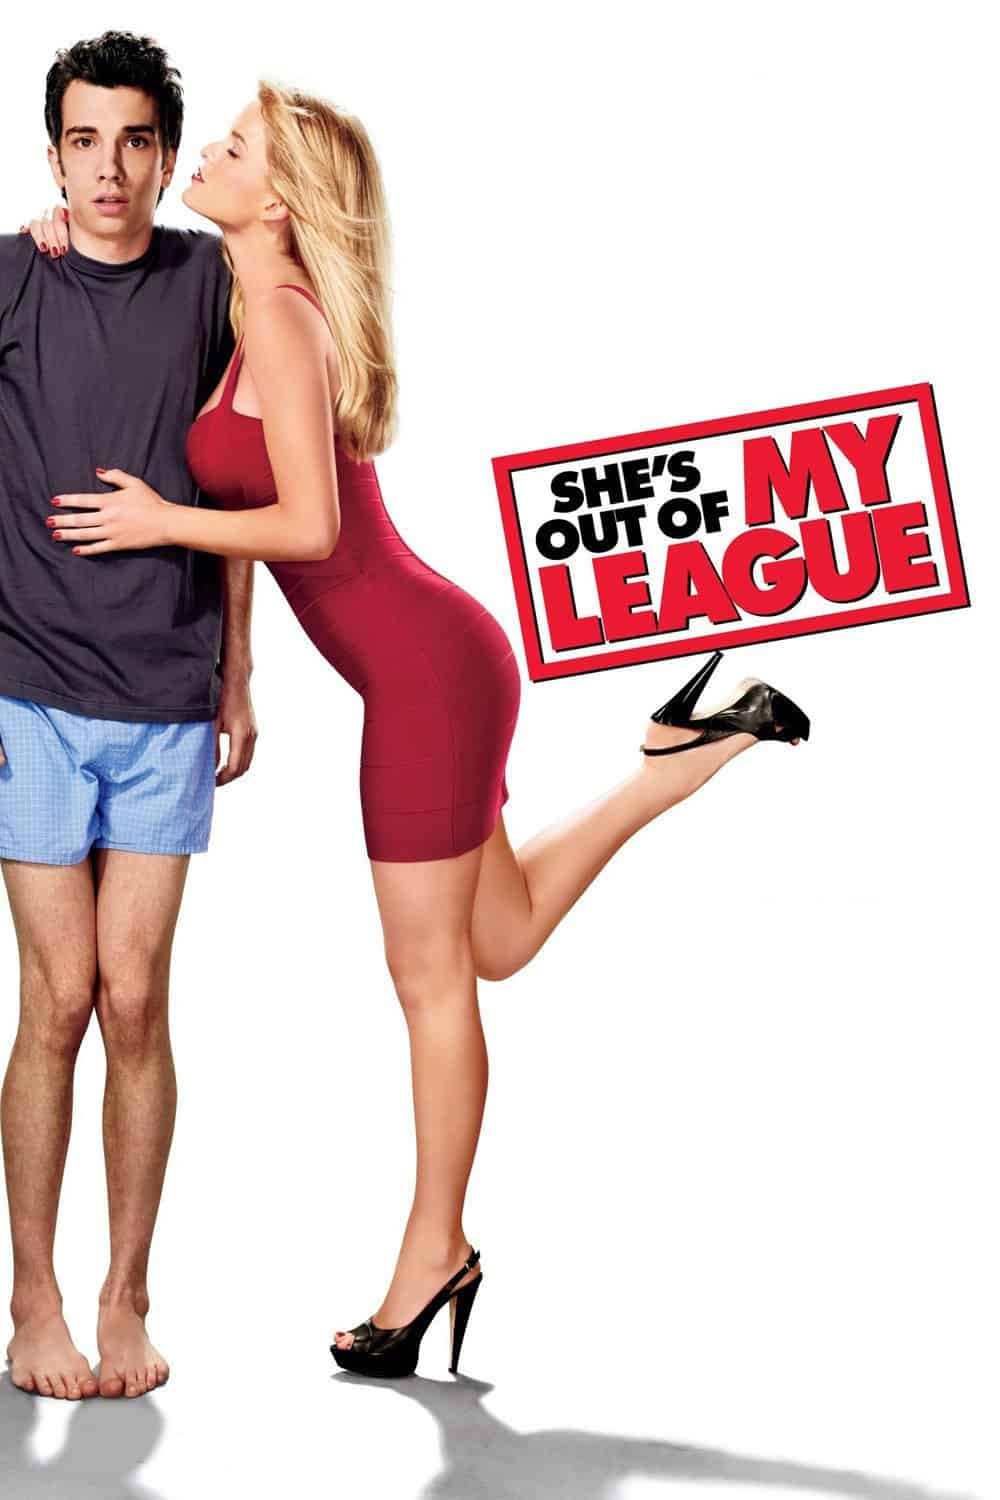 She's Out of My League, 2010